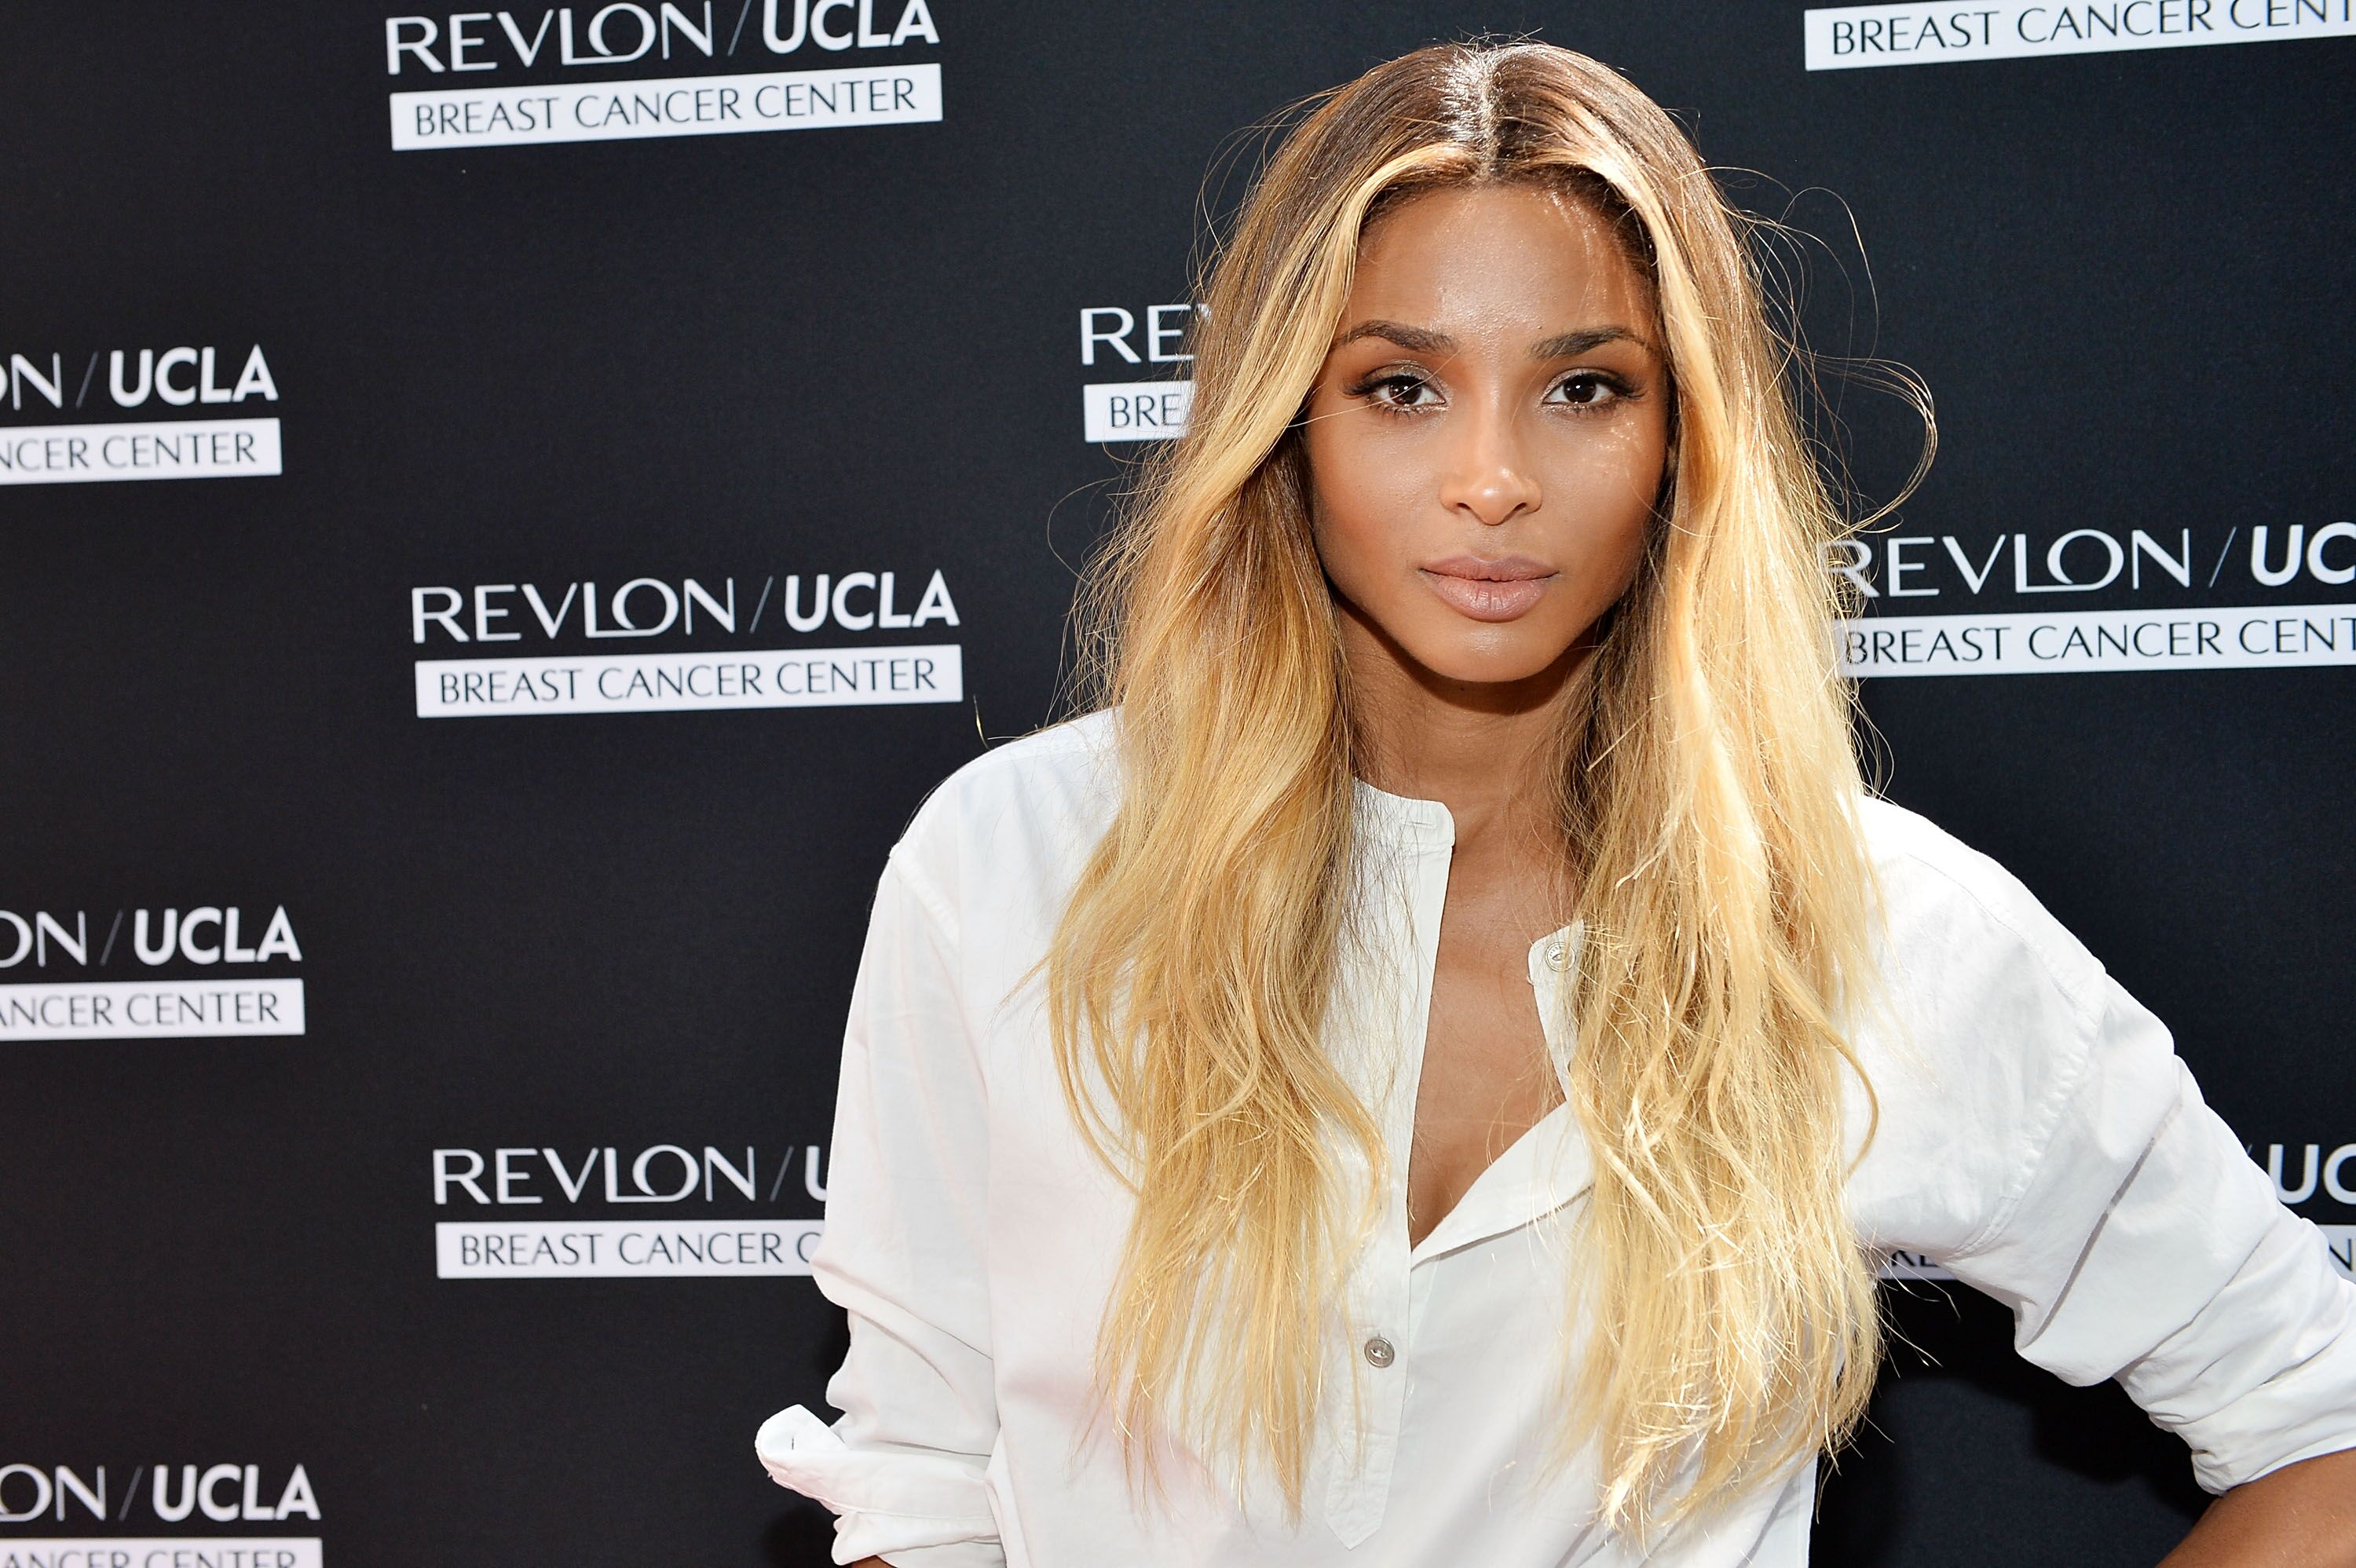 Ciara celebrates ground-breaking achievements in cancer research at Revlon's Annual Philanthropic Luncheon at the Chateau Marmont on September 27, 2016 in Los Angeles, California | Photo: Getty Images